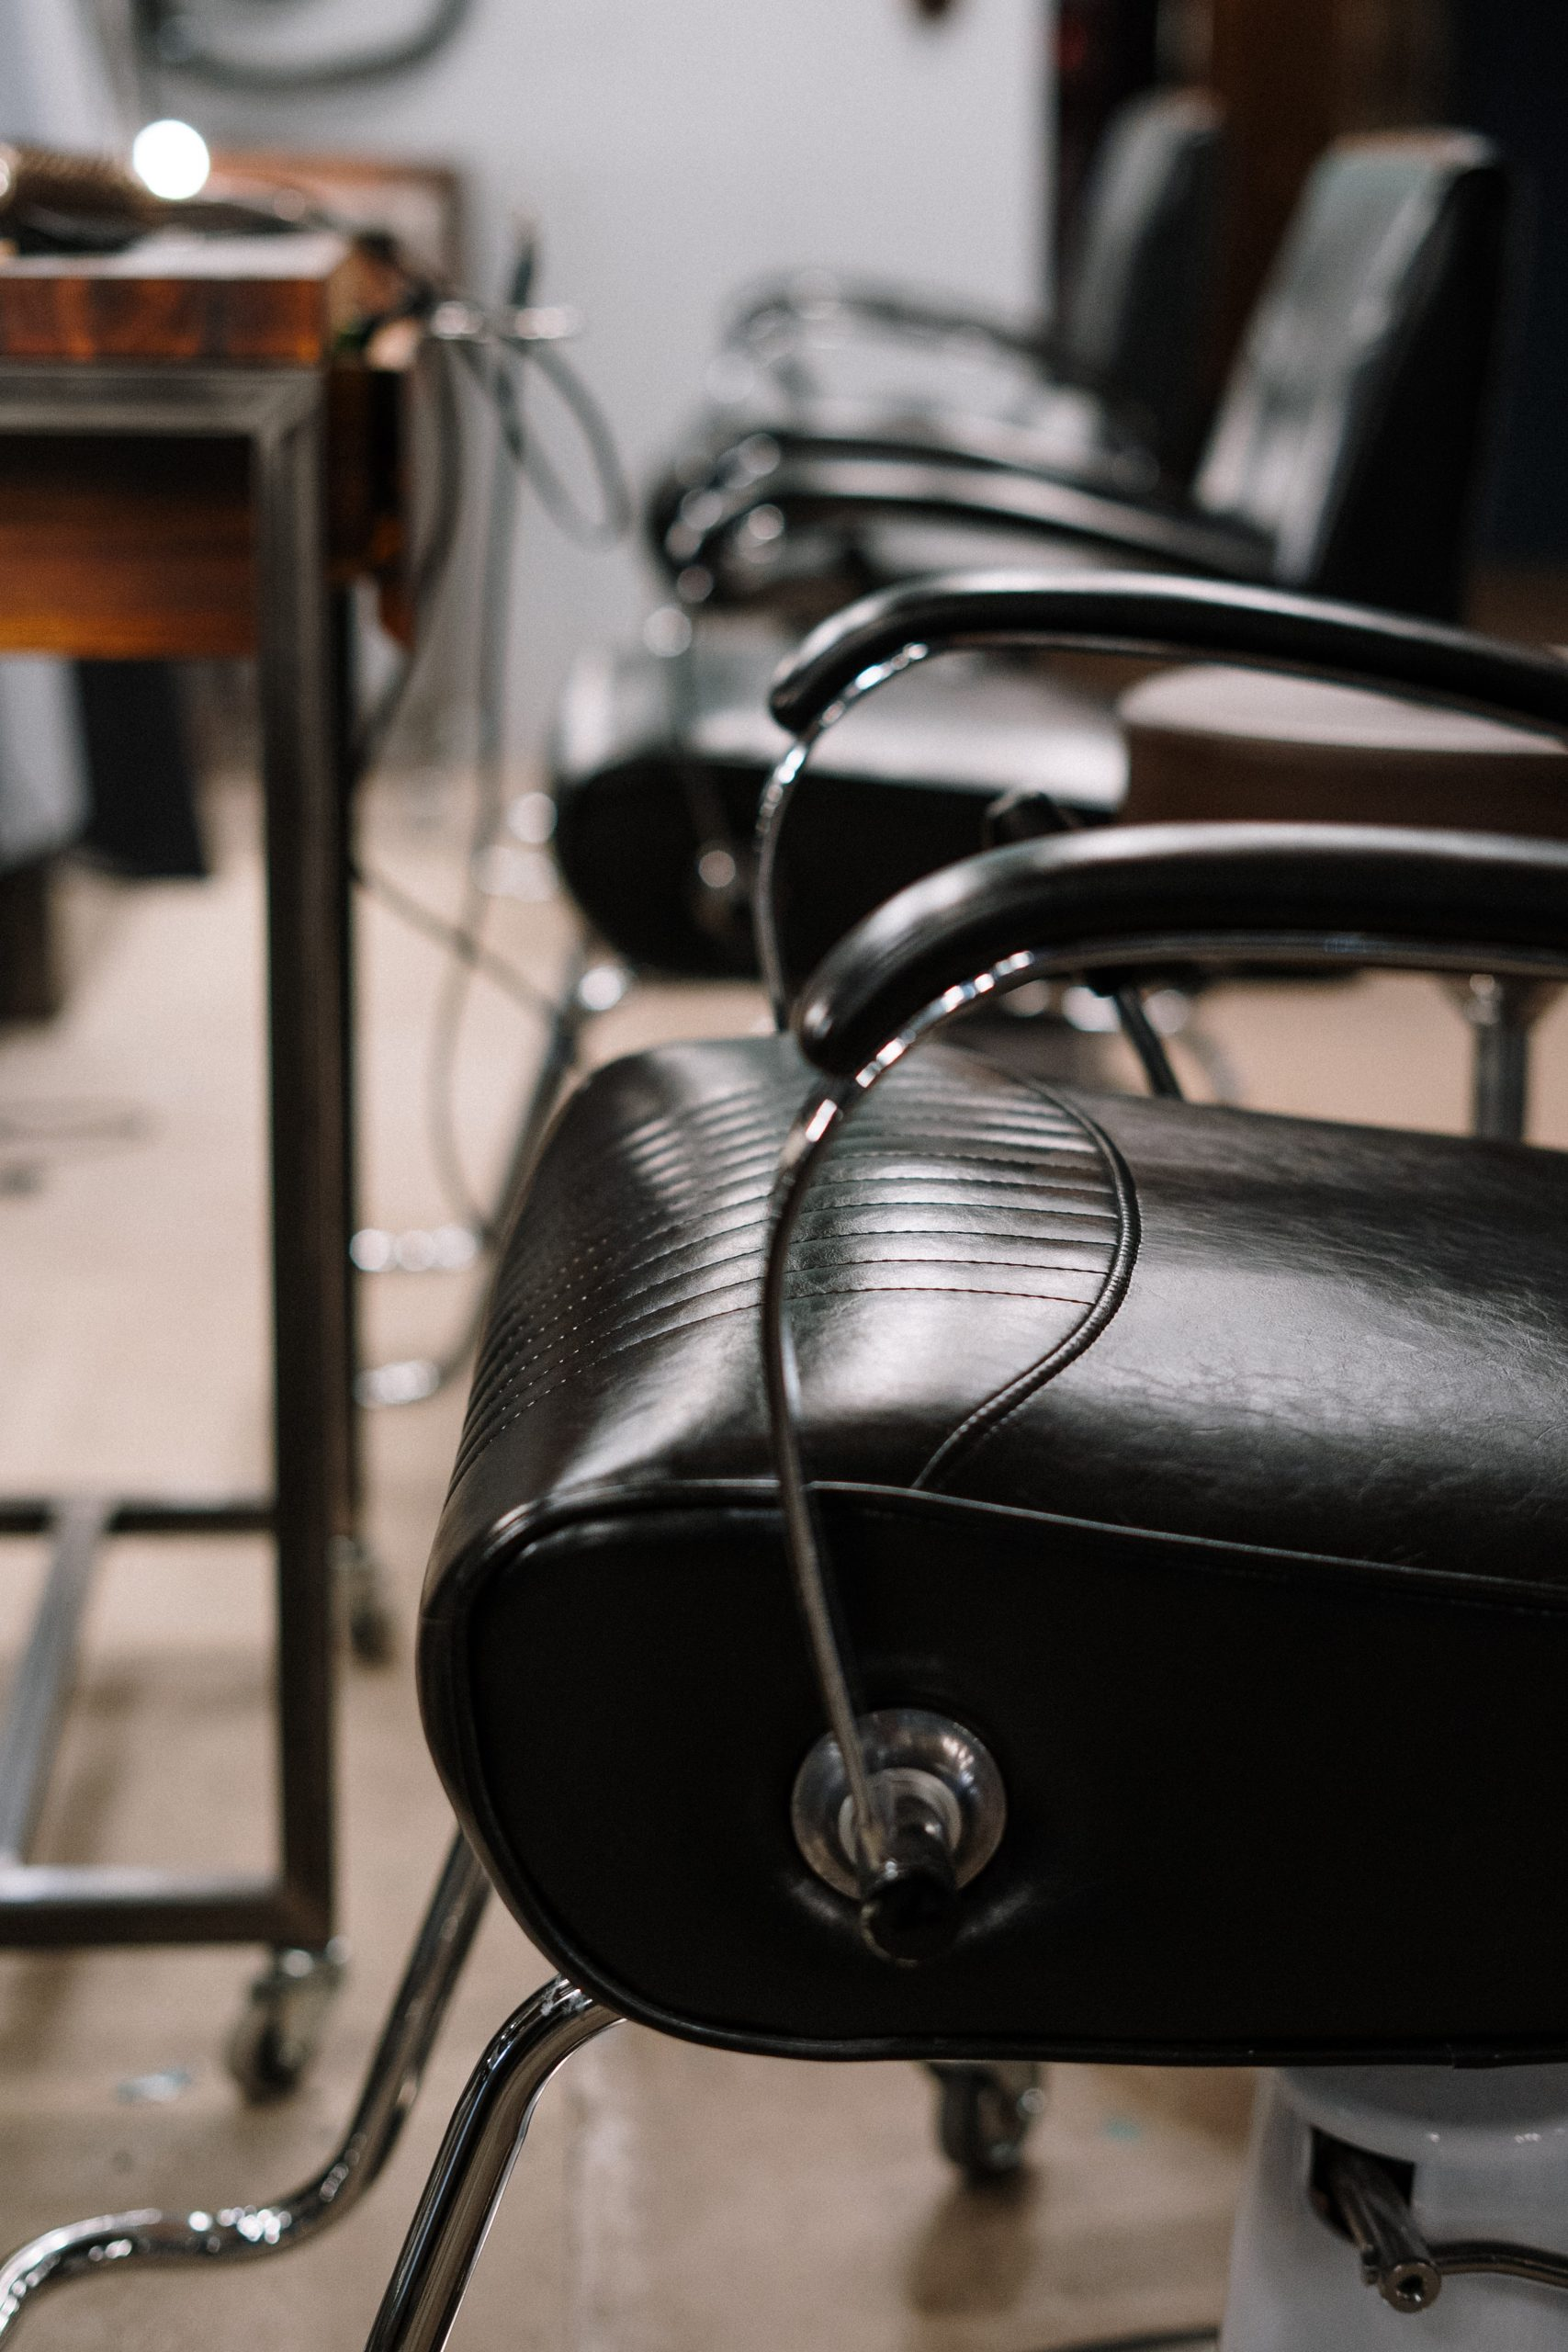 How to Disinfect Salon Chairs